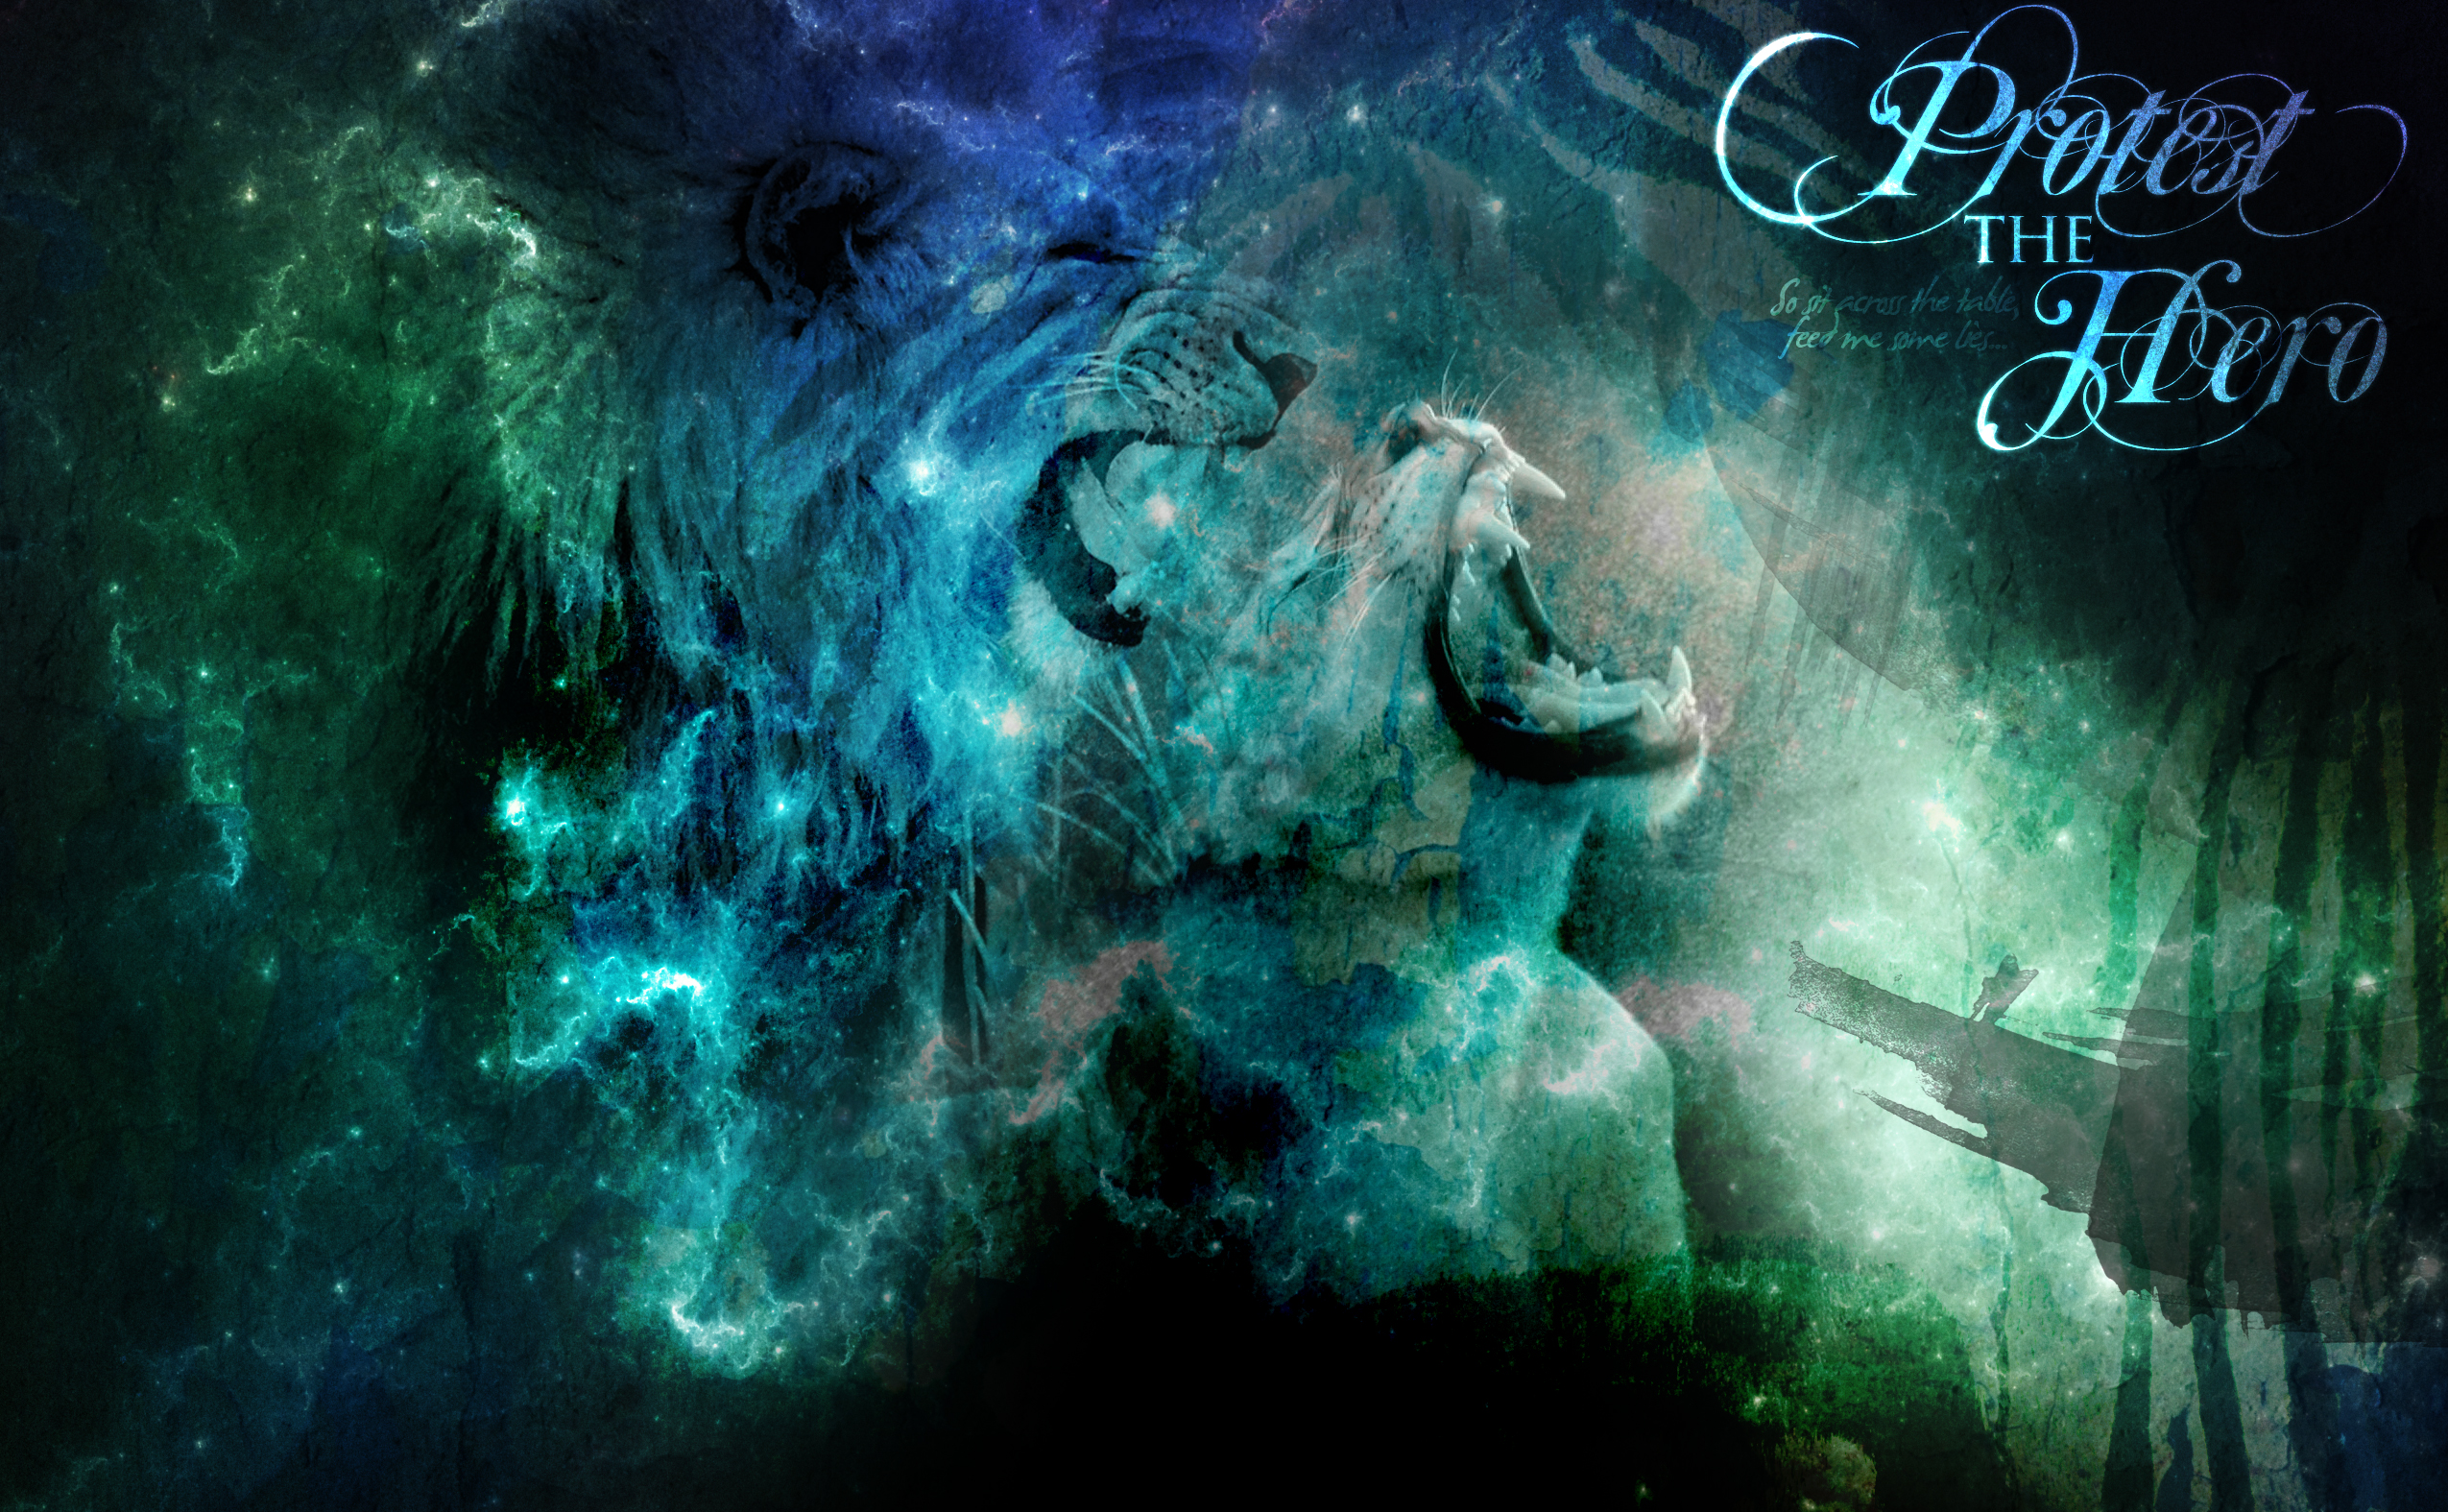 protest the hero fortress wallpaper - photo #5